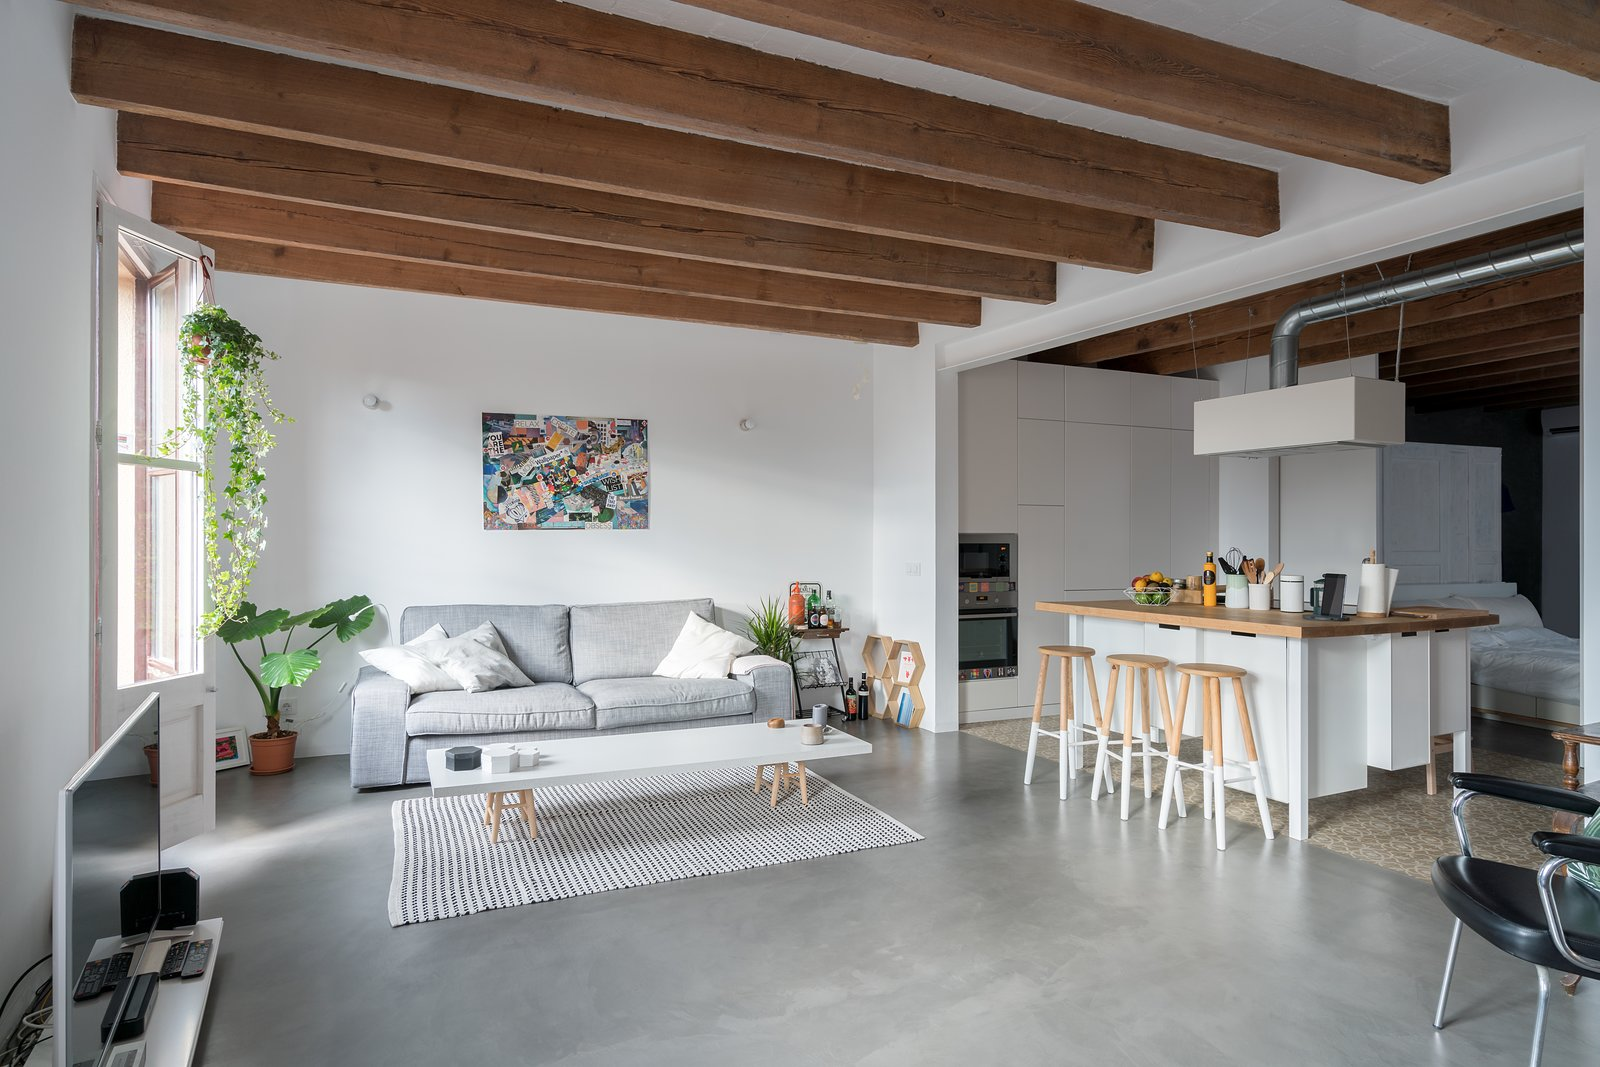 White Cabinet, Chair, Concrete Floor, Porcelain Tile Floor, Wood Counter, Living Room, Sofa, and Coffee Tables Living Room  Old Town Refurbishment by Habitan Architects